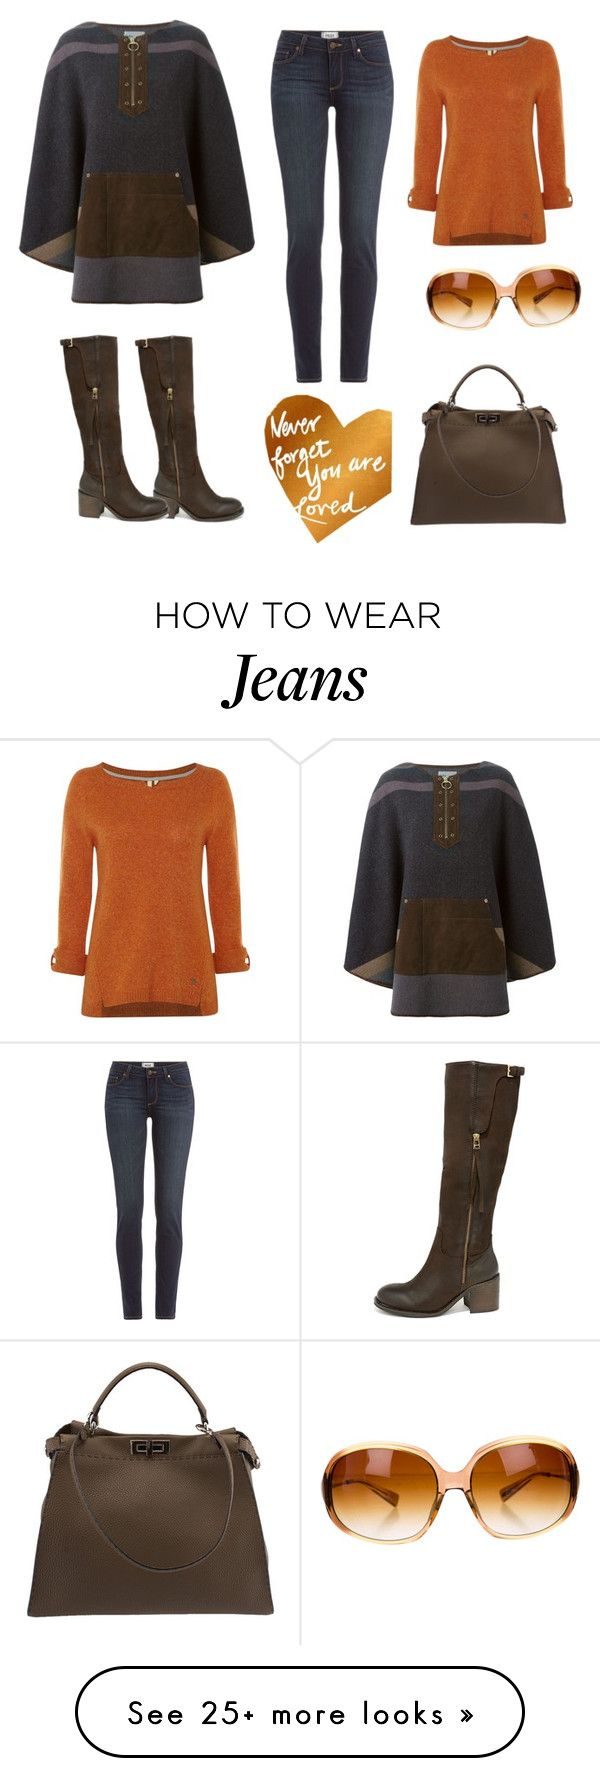 """""""Loved"""" by b-nieves on Polyvore featuring Kolor, Steve Madden, Paige Denim, White Stuff, Fendi and Oliver Peoples"""